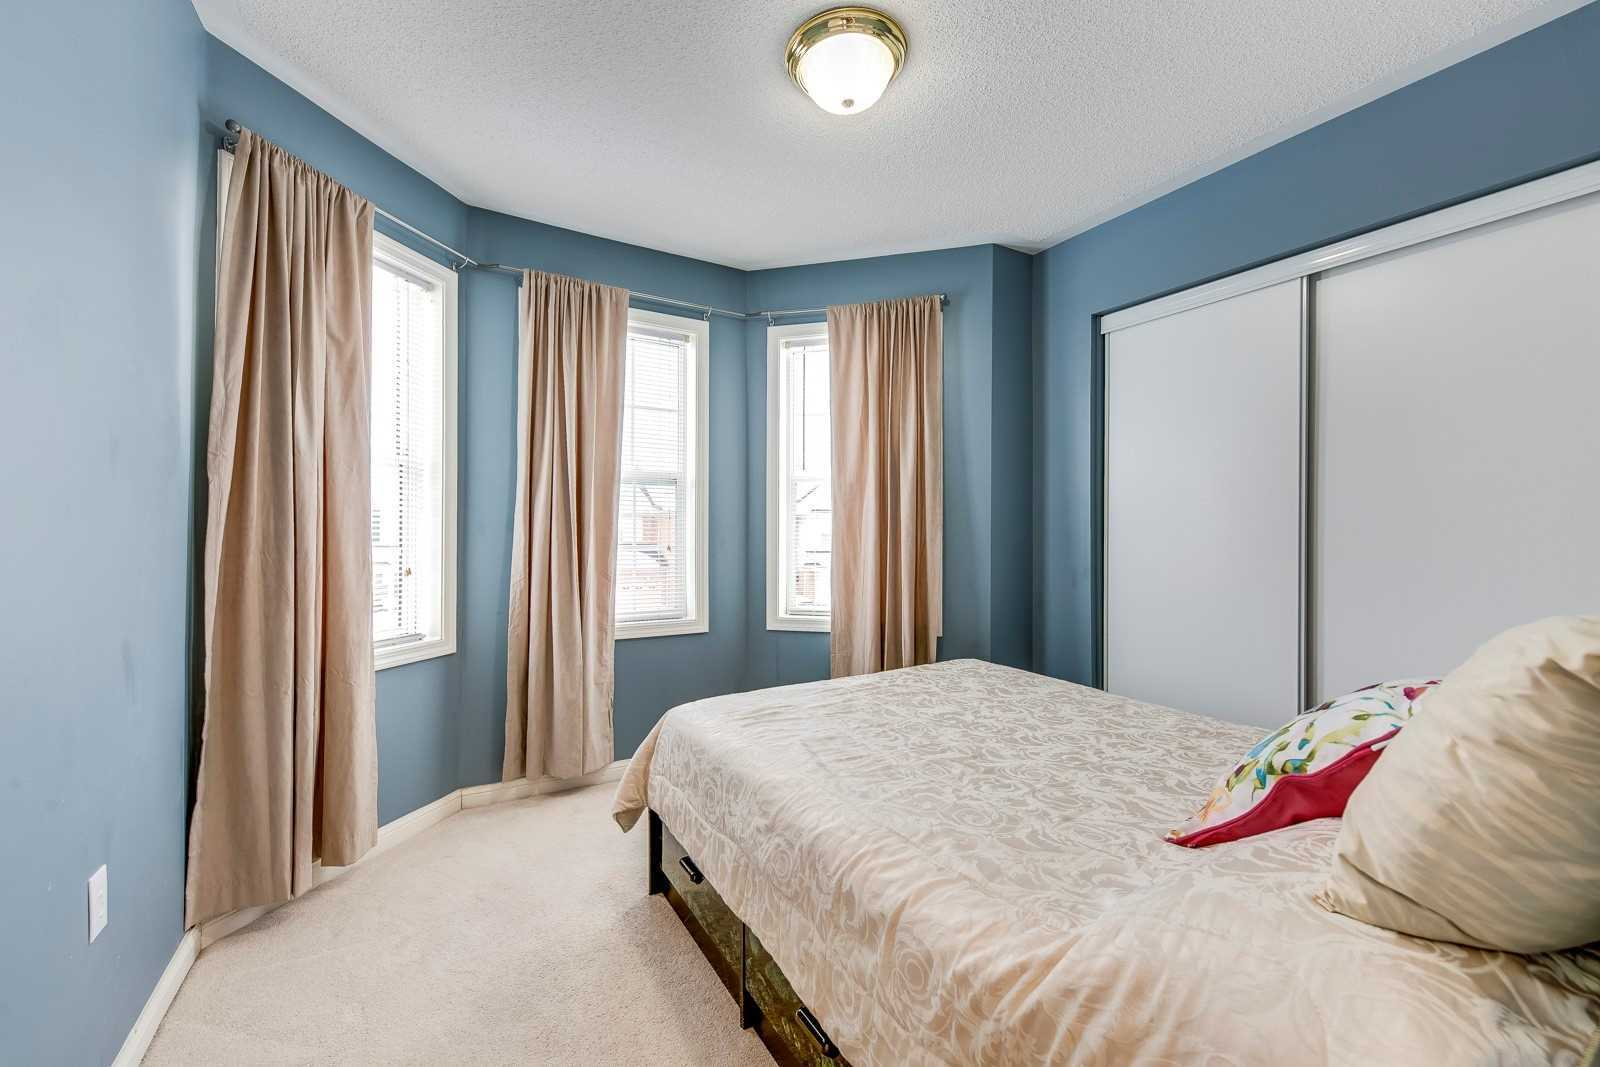 Image 3 of 20 showing inside of 3 Bedroom Att/Row/Twnhouse 2-Storey house for sale at 682 Edwards Ave, Milton L9T6B3